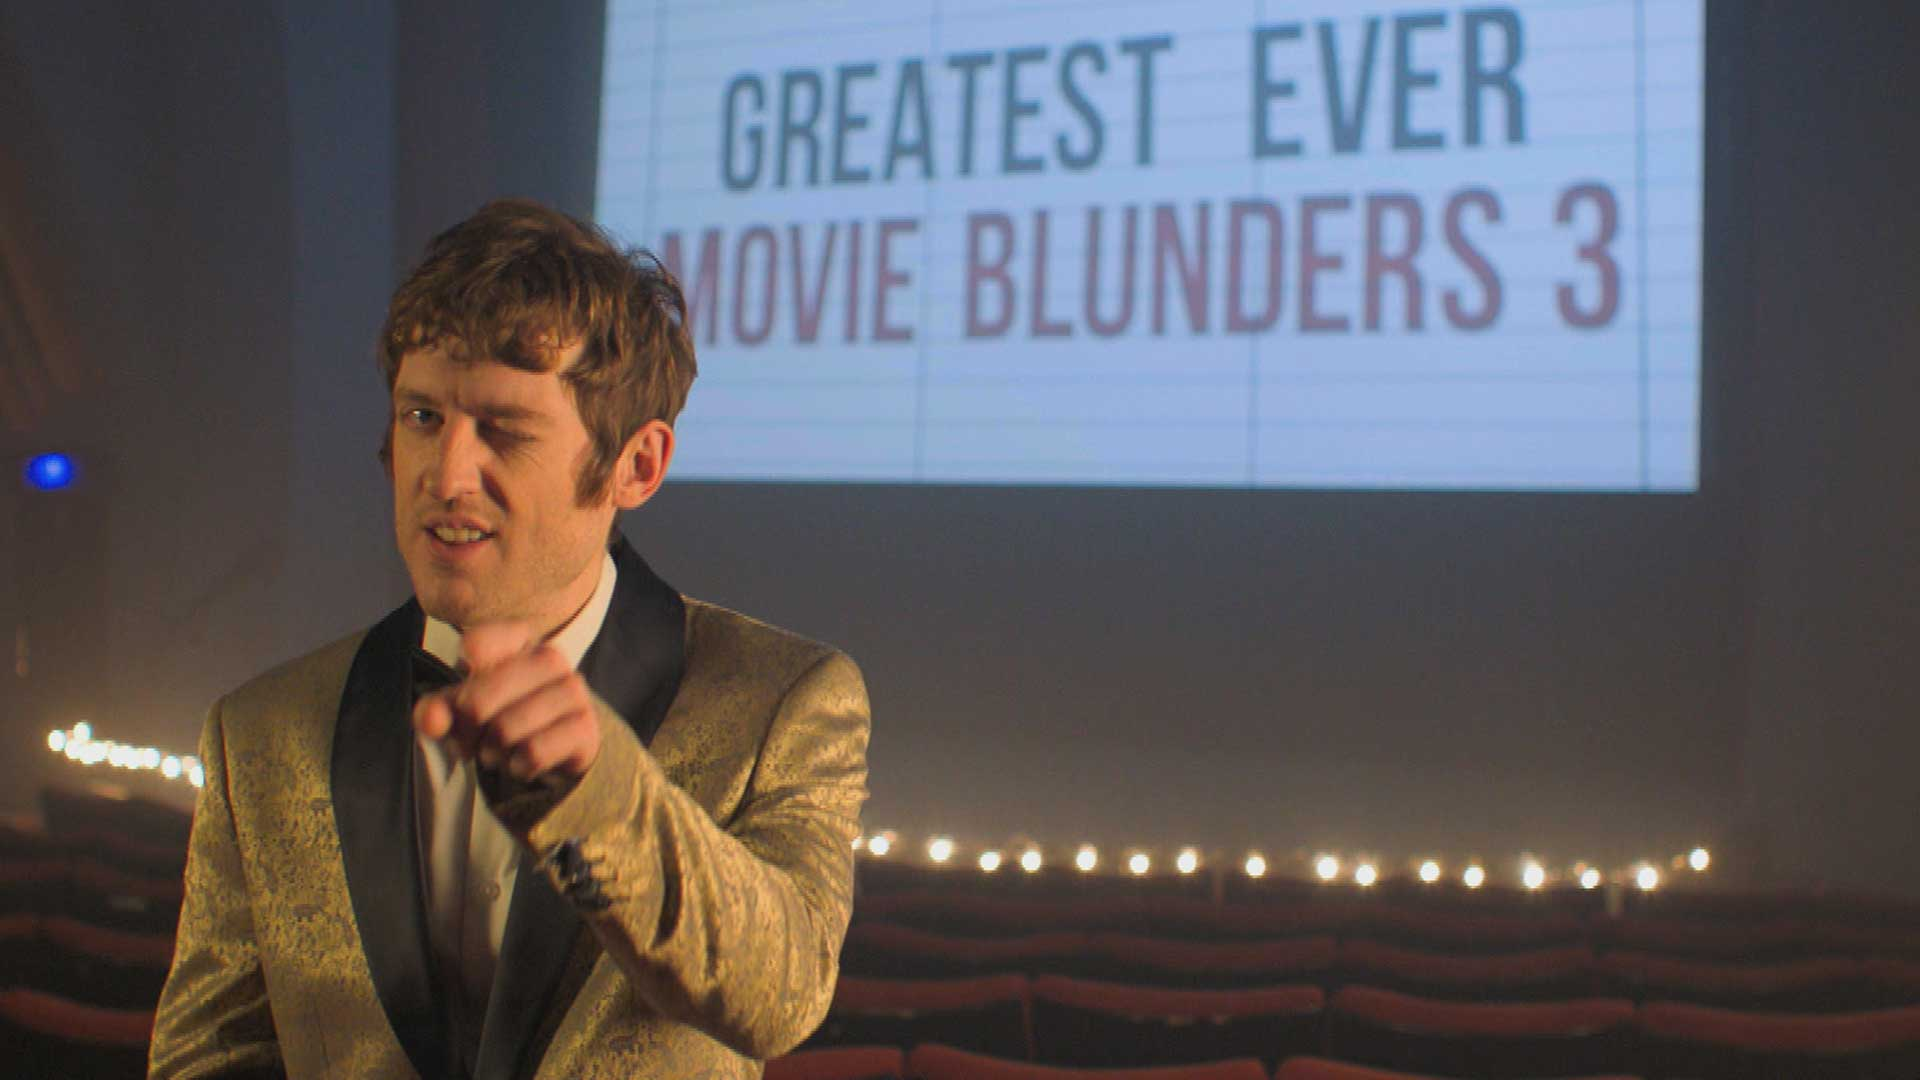 Greatest Ever Movie Blunders